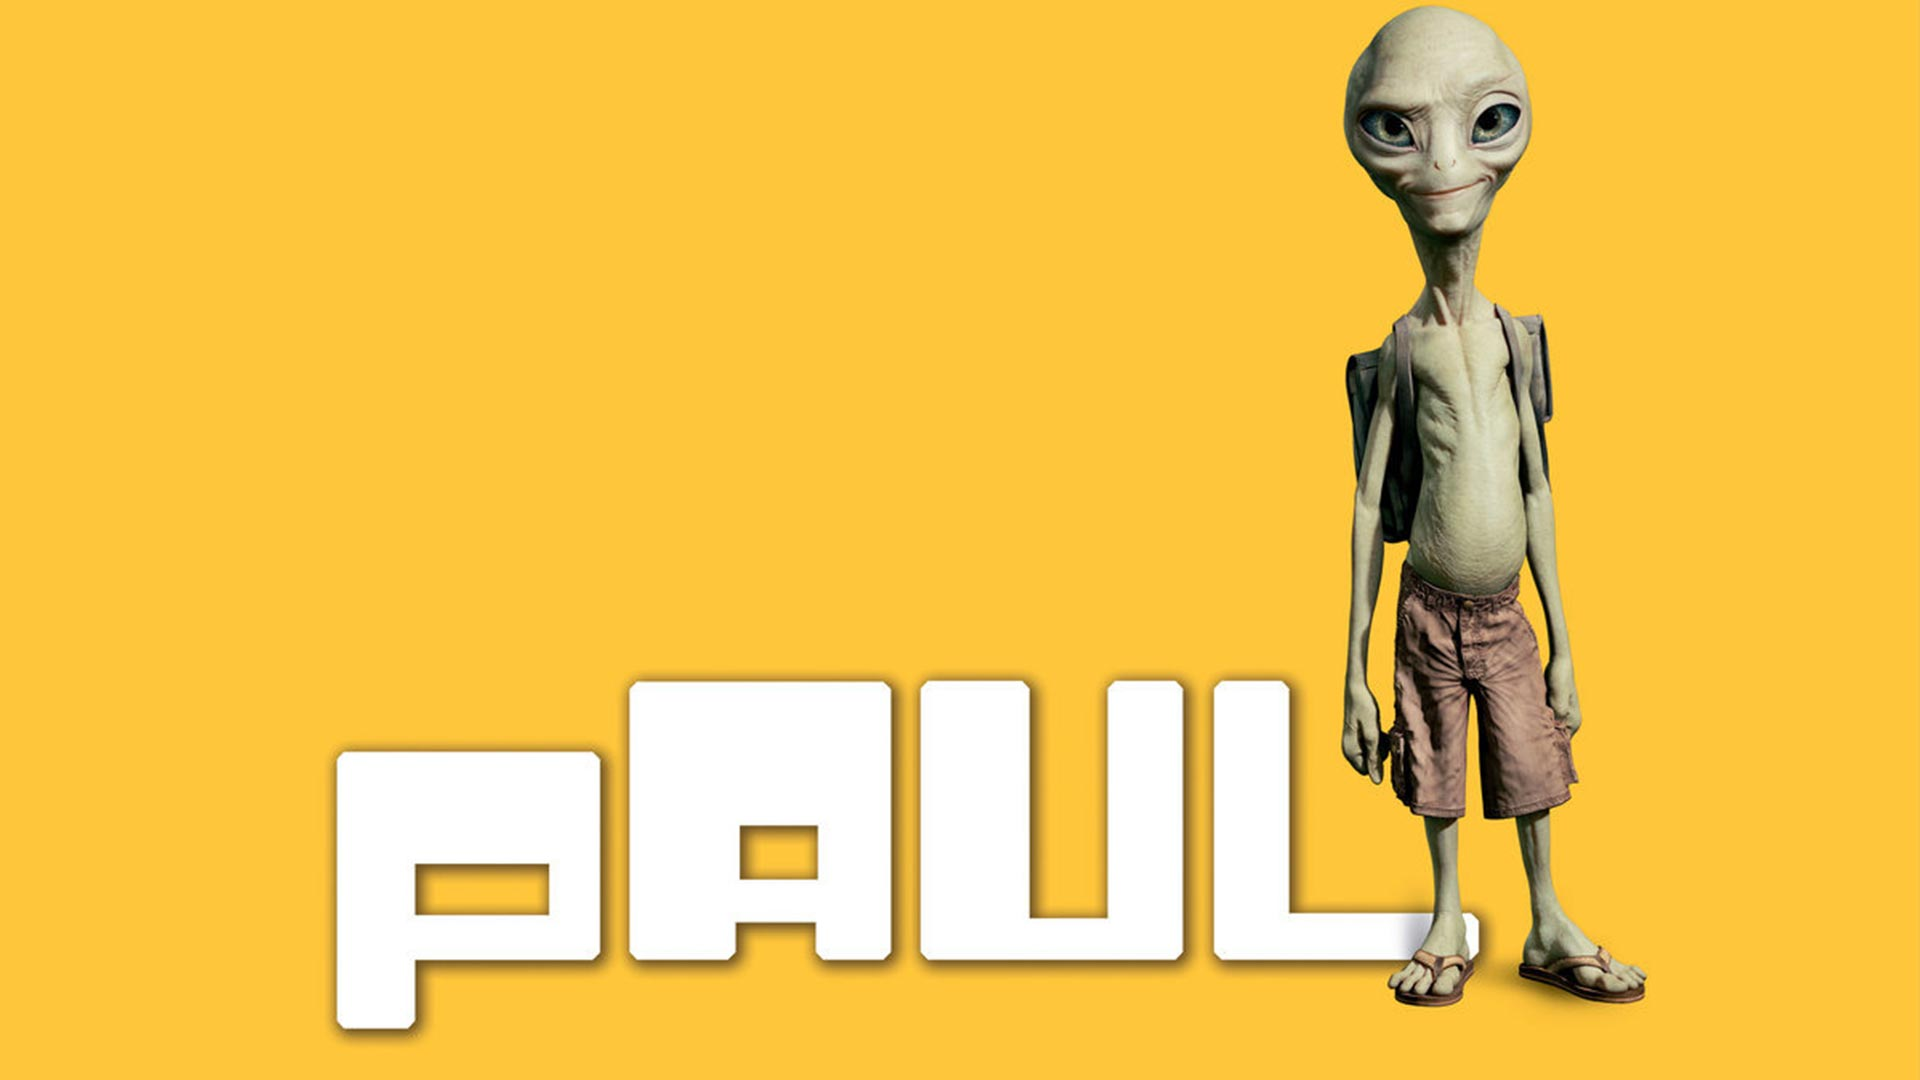 Paul Extended Version